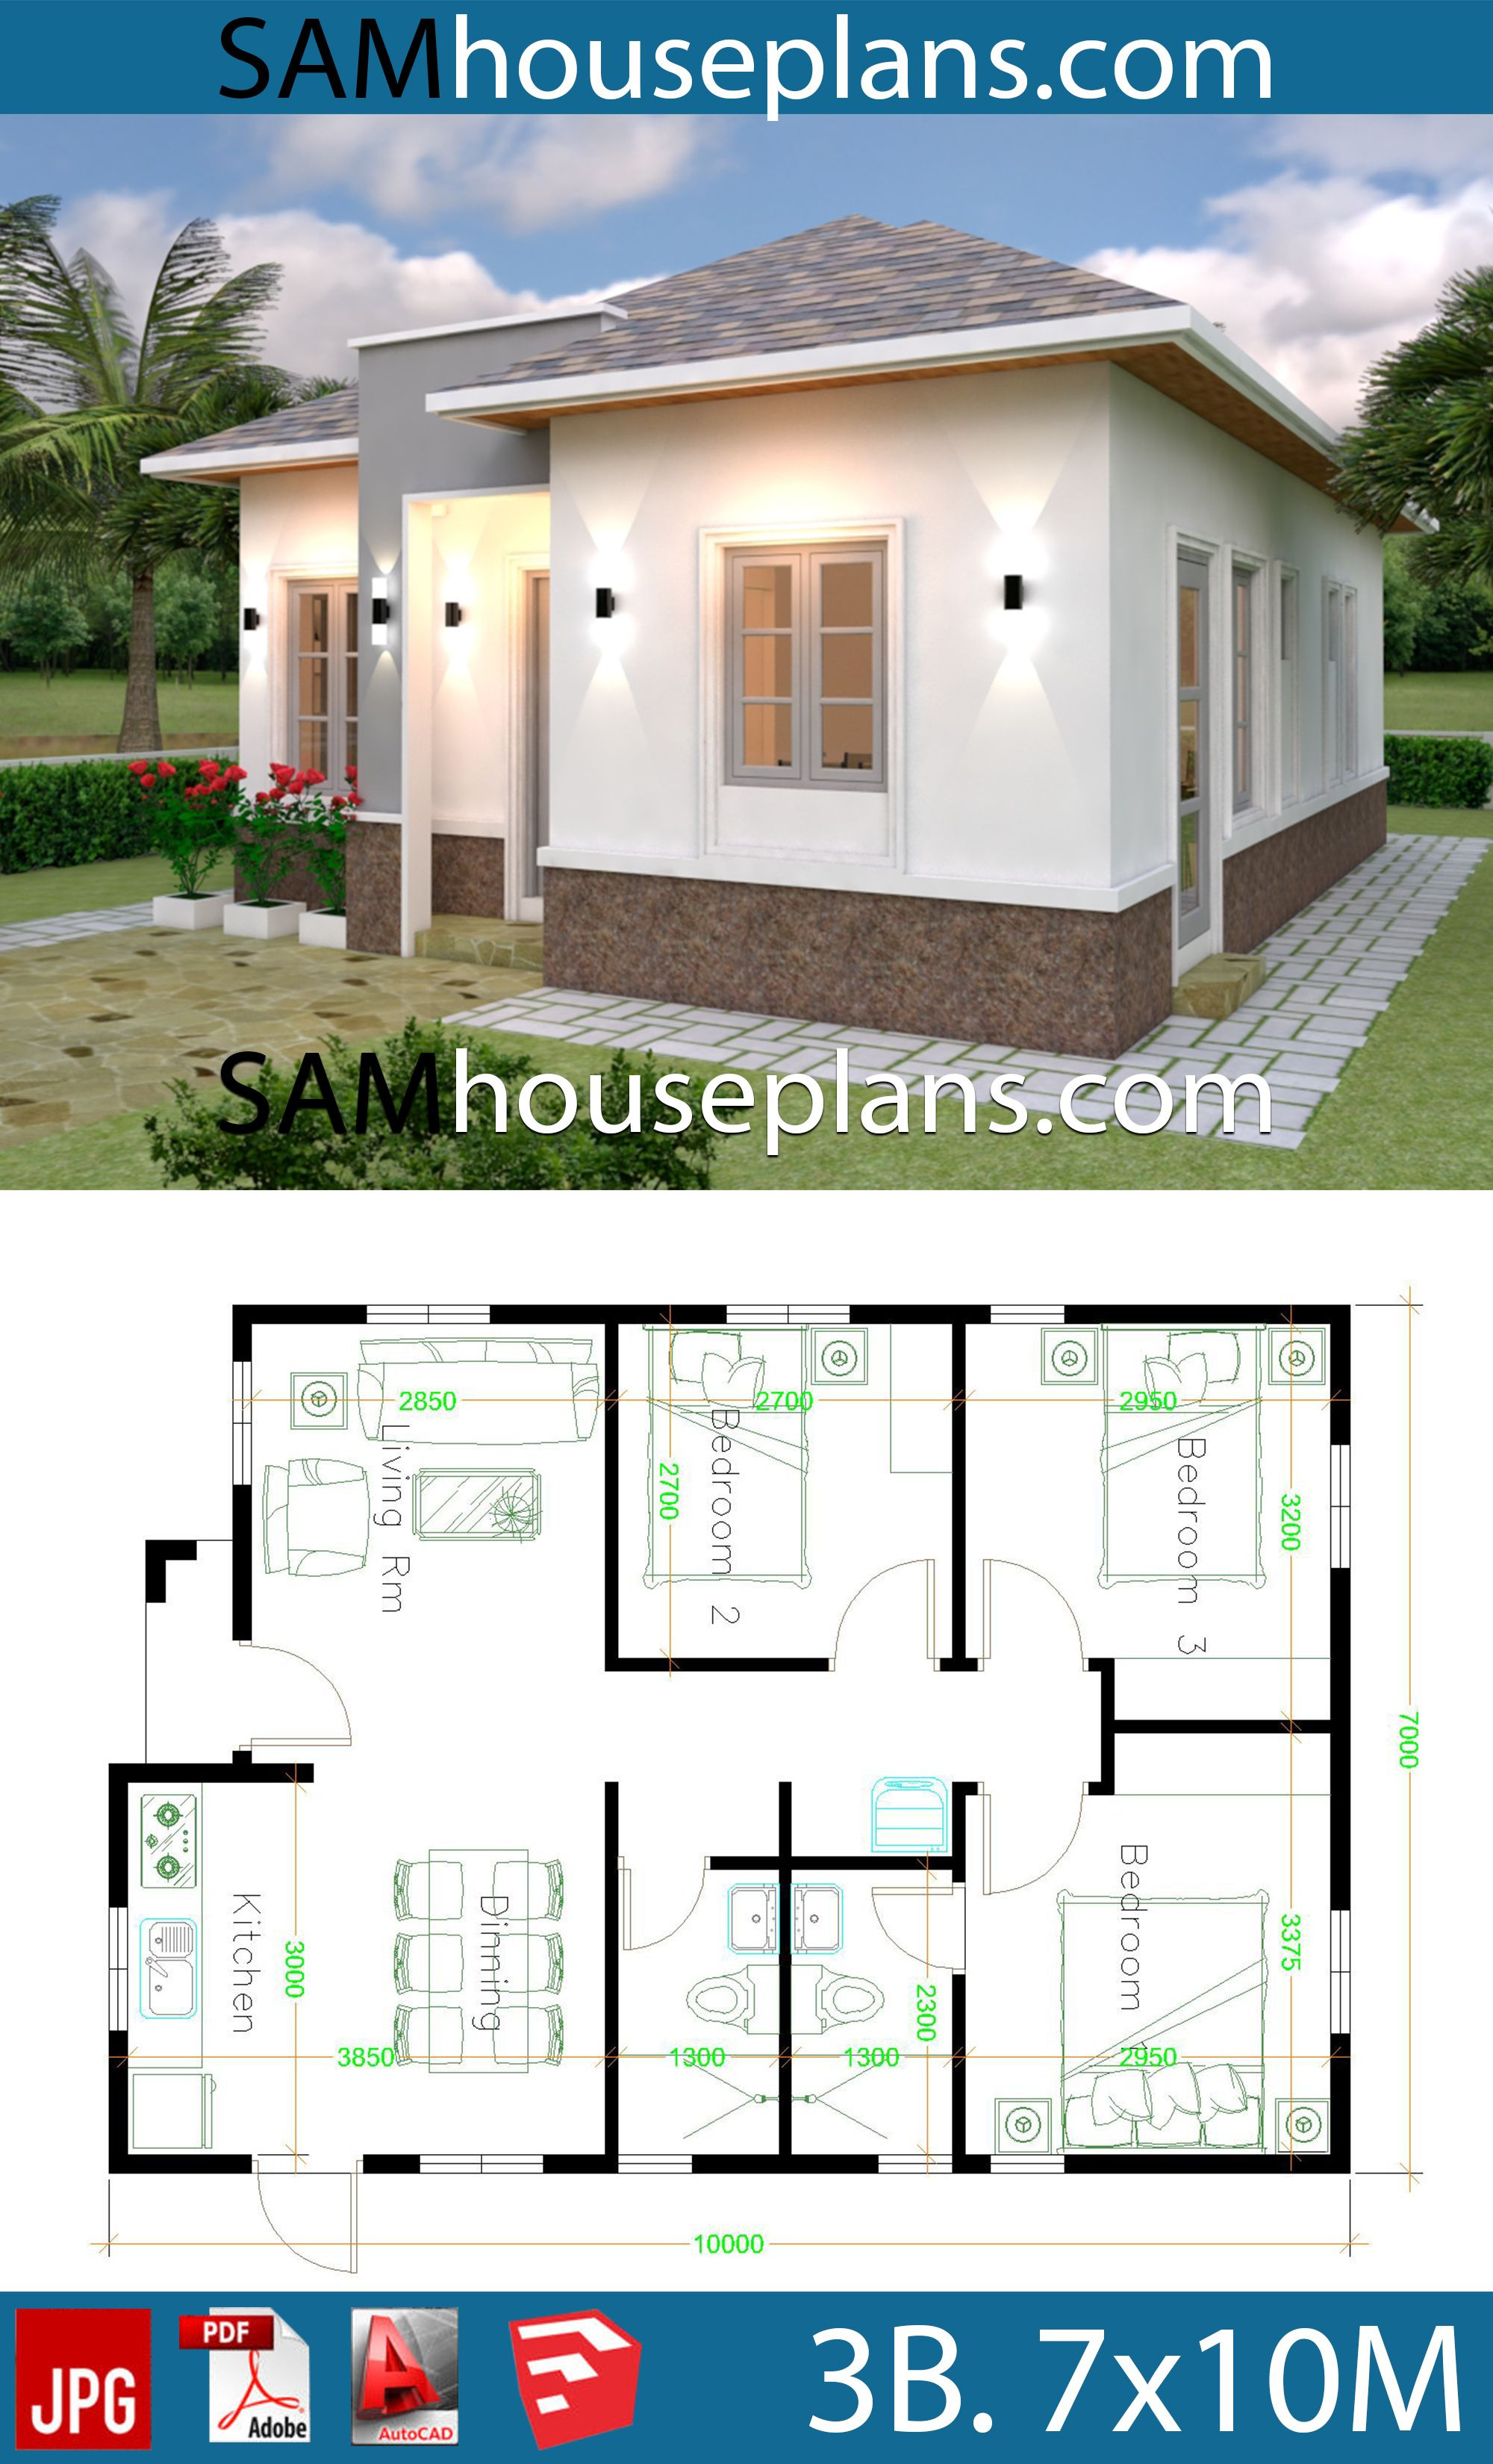 Simple House Plans Free Beautiful House Plans 7x10 with 3 Bedrooms In 2020